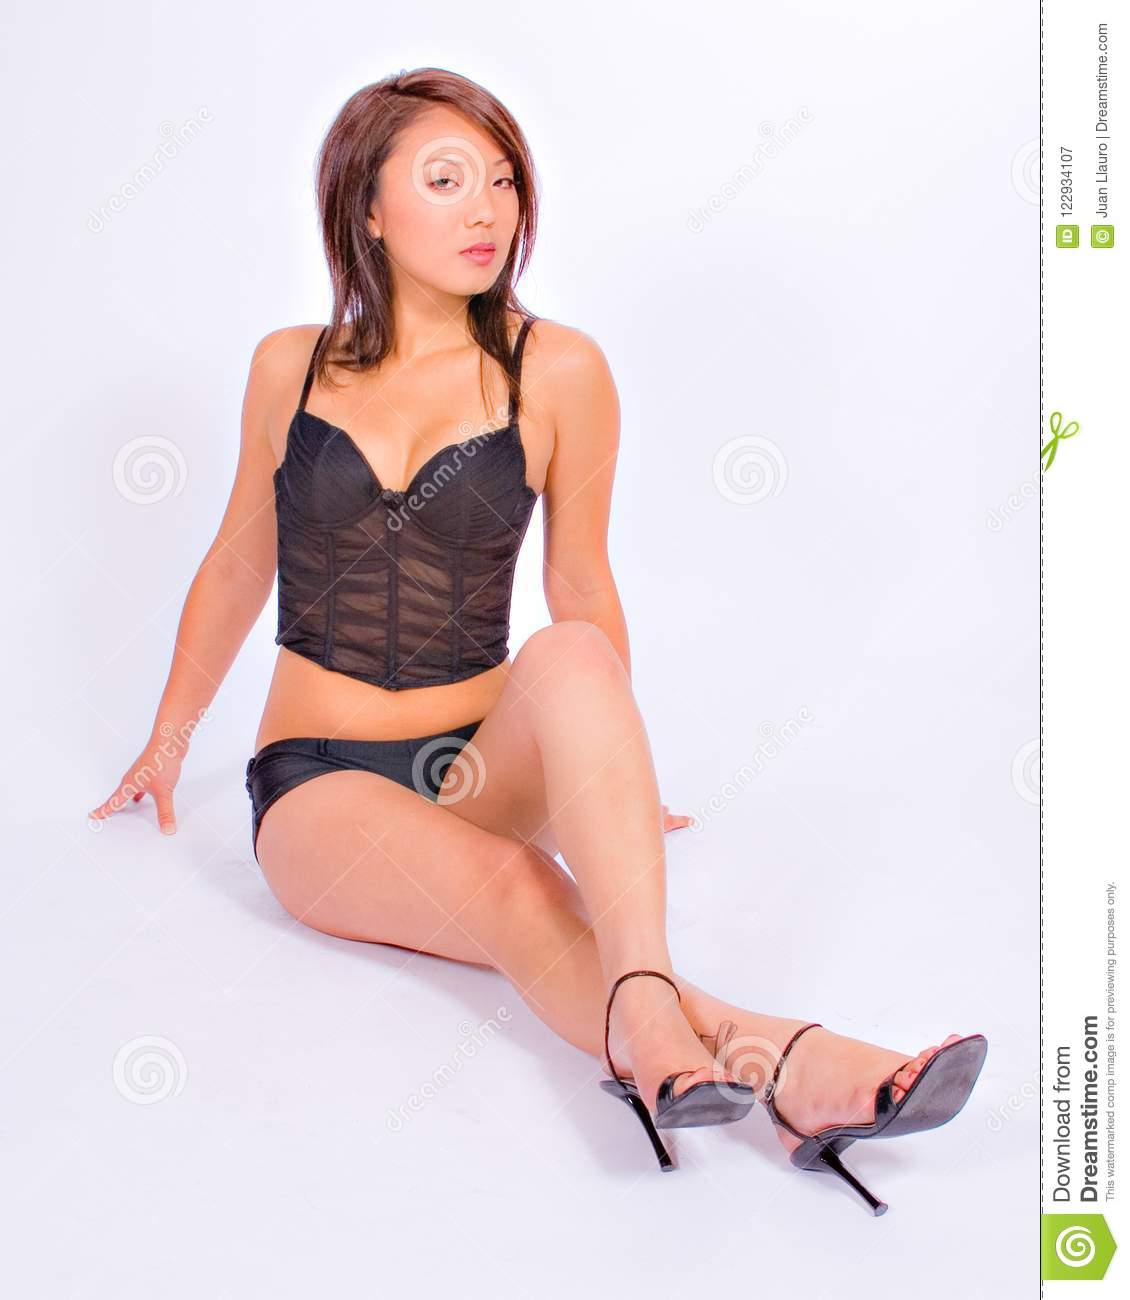 Sexy pictures of asian women in high heels